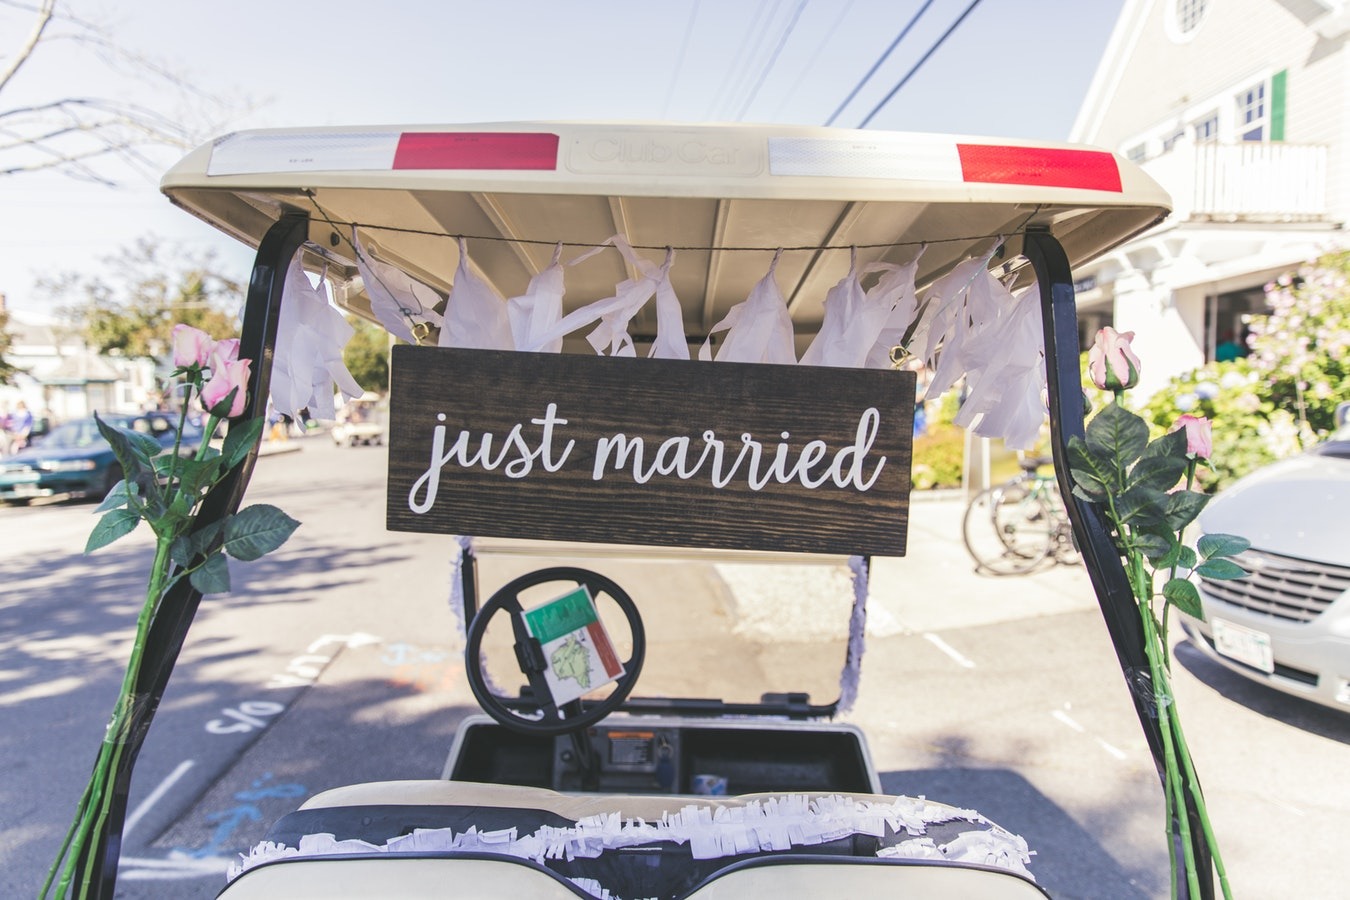 go kart with 'just married' sign.